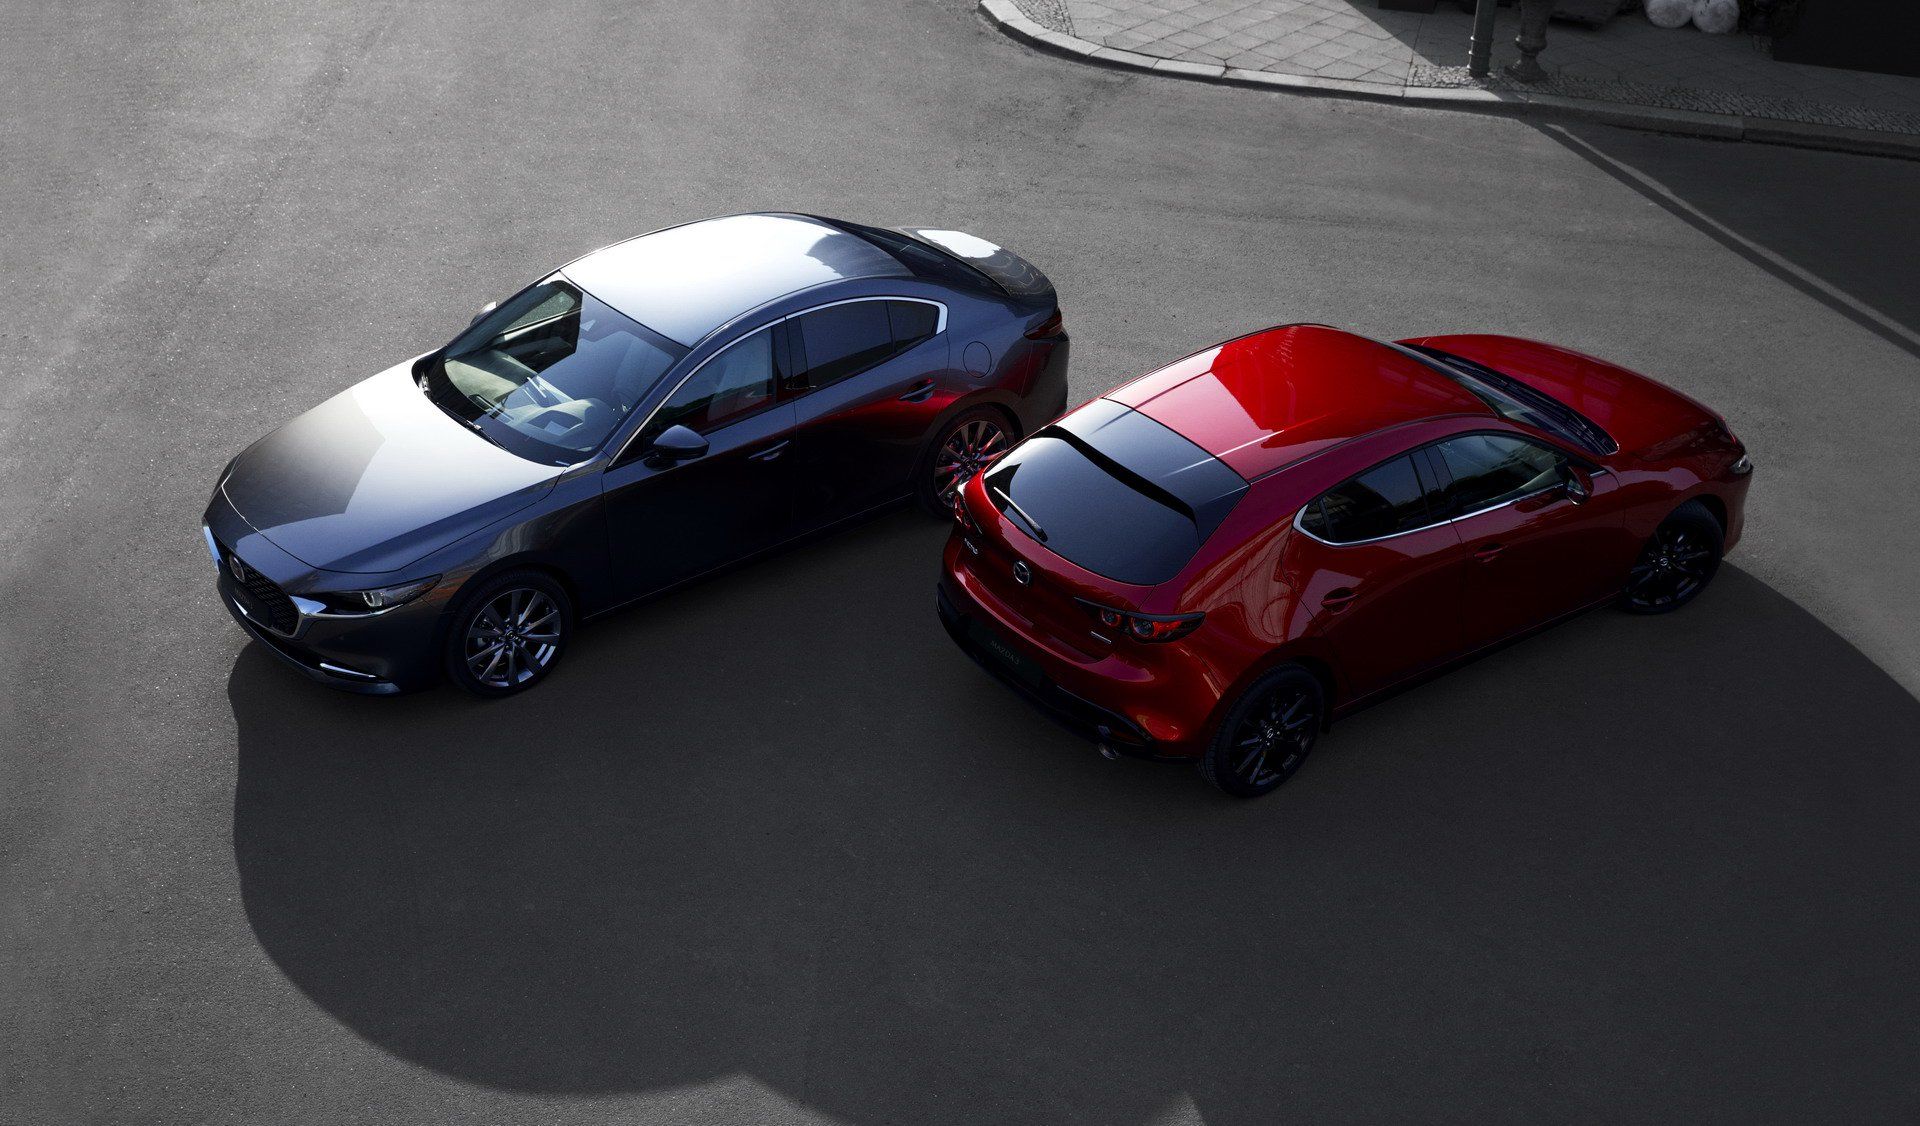 Mazda3 Hatchback and Mazda3 sedan 2019 (27)